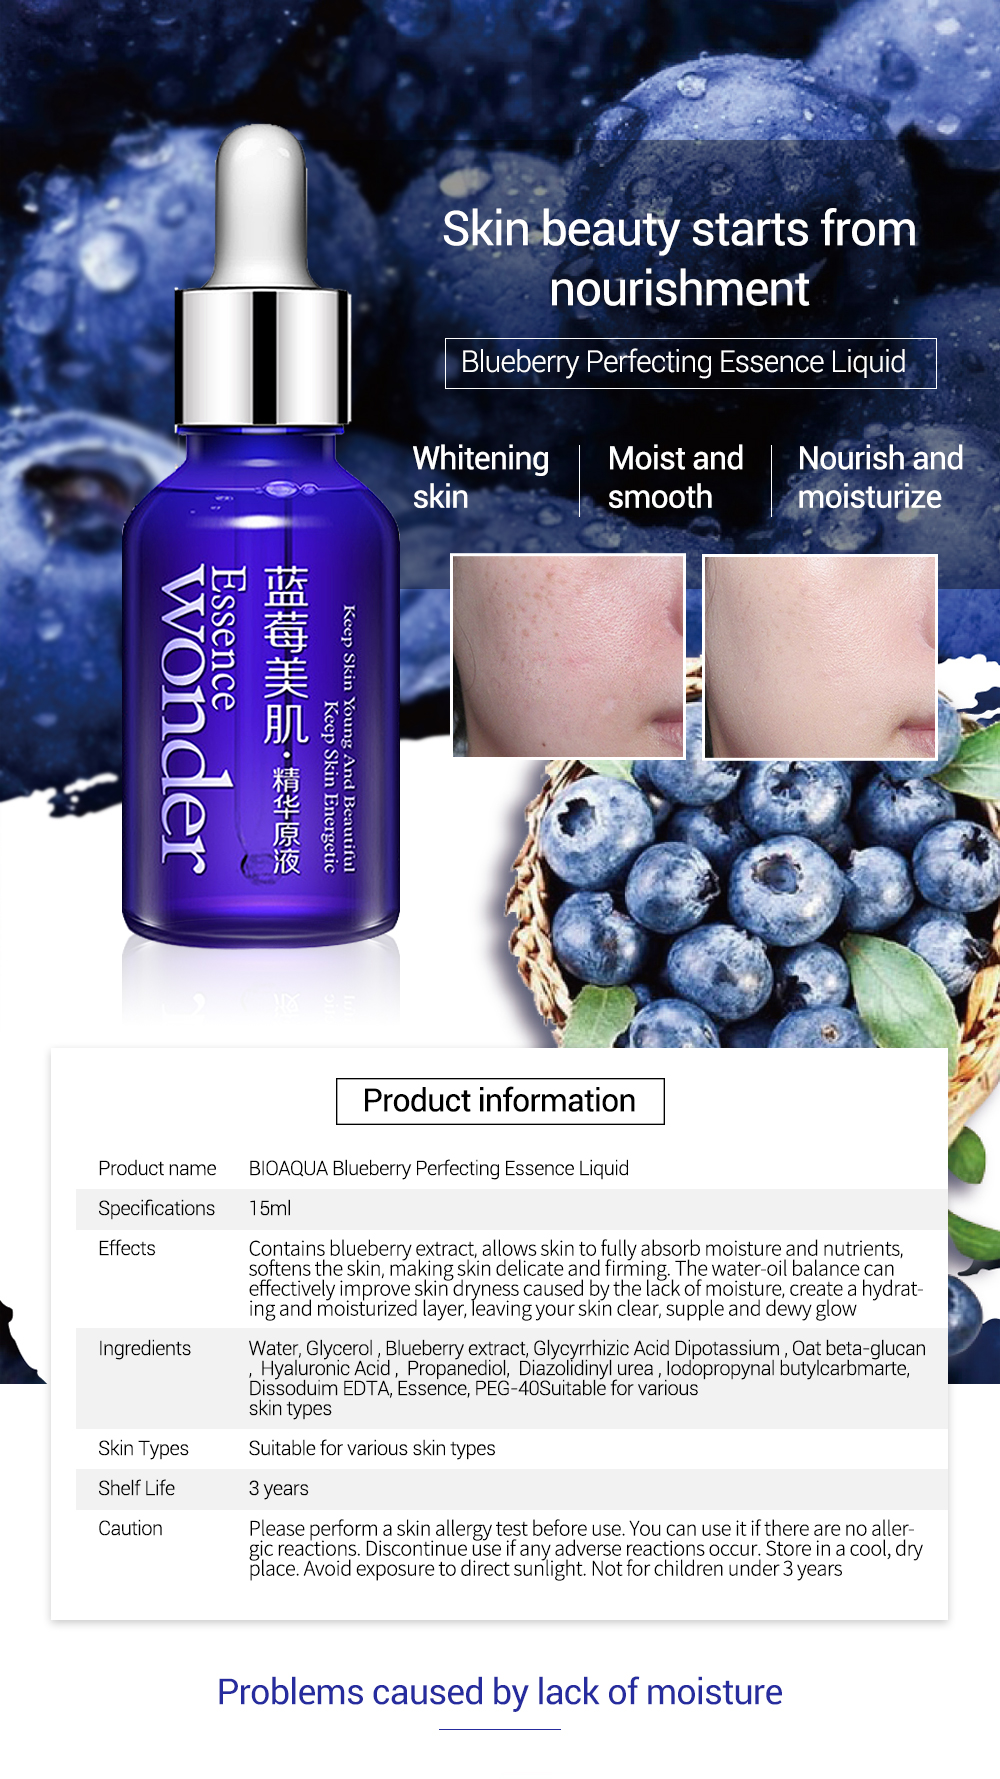 Skin Care Smart Bioaqua Brand Skin Care Blueberry Hyaluronic Acid Liquid Anti Wrinkle Anti Aging Collagen Essence Whitening Moisturizing Liquid With A Long Standing Reputation Facial Self Tanners & Bronzers